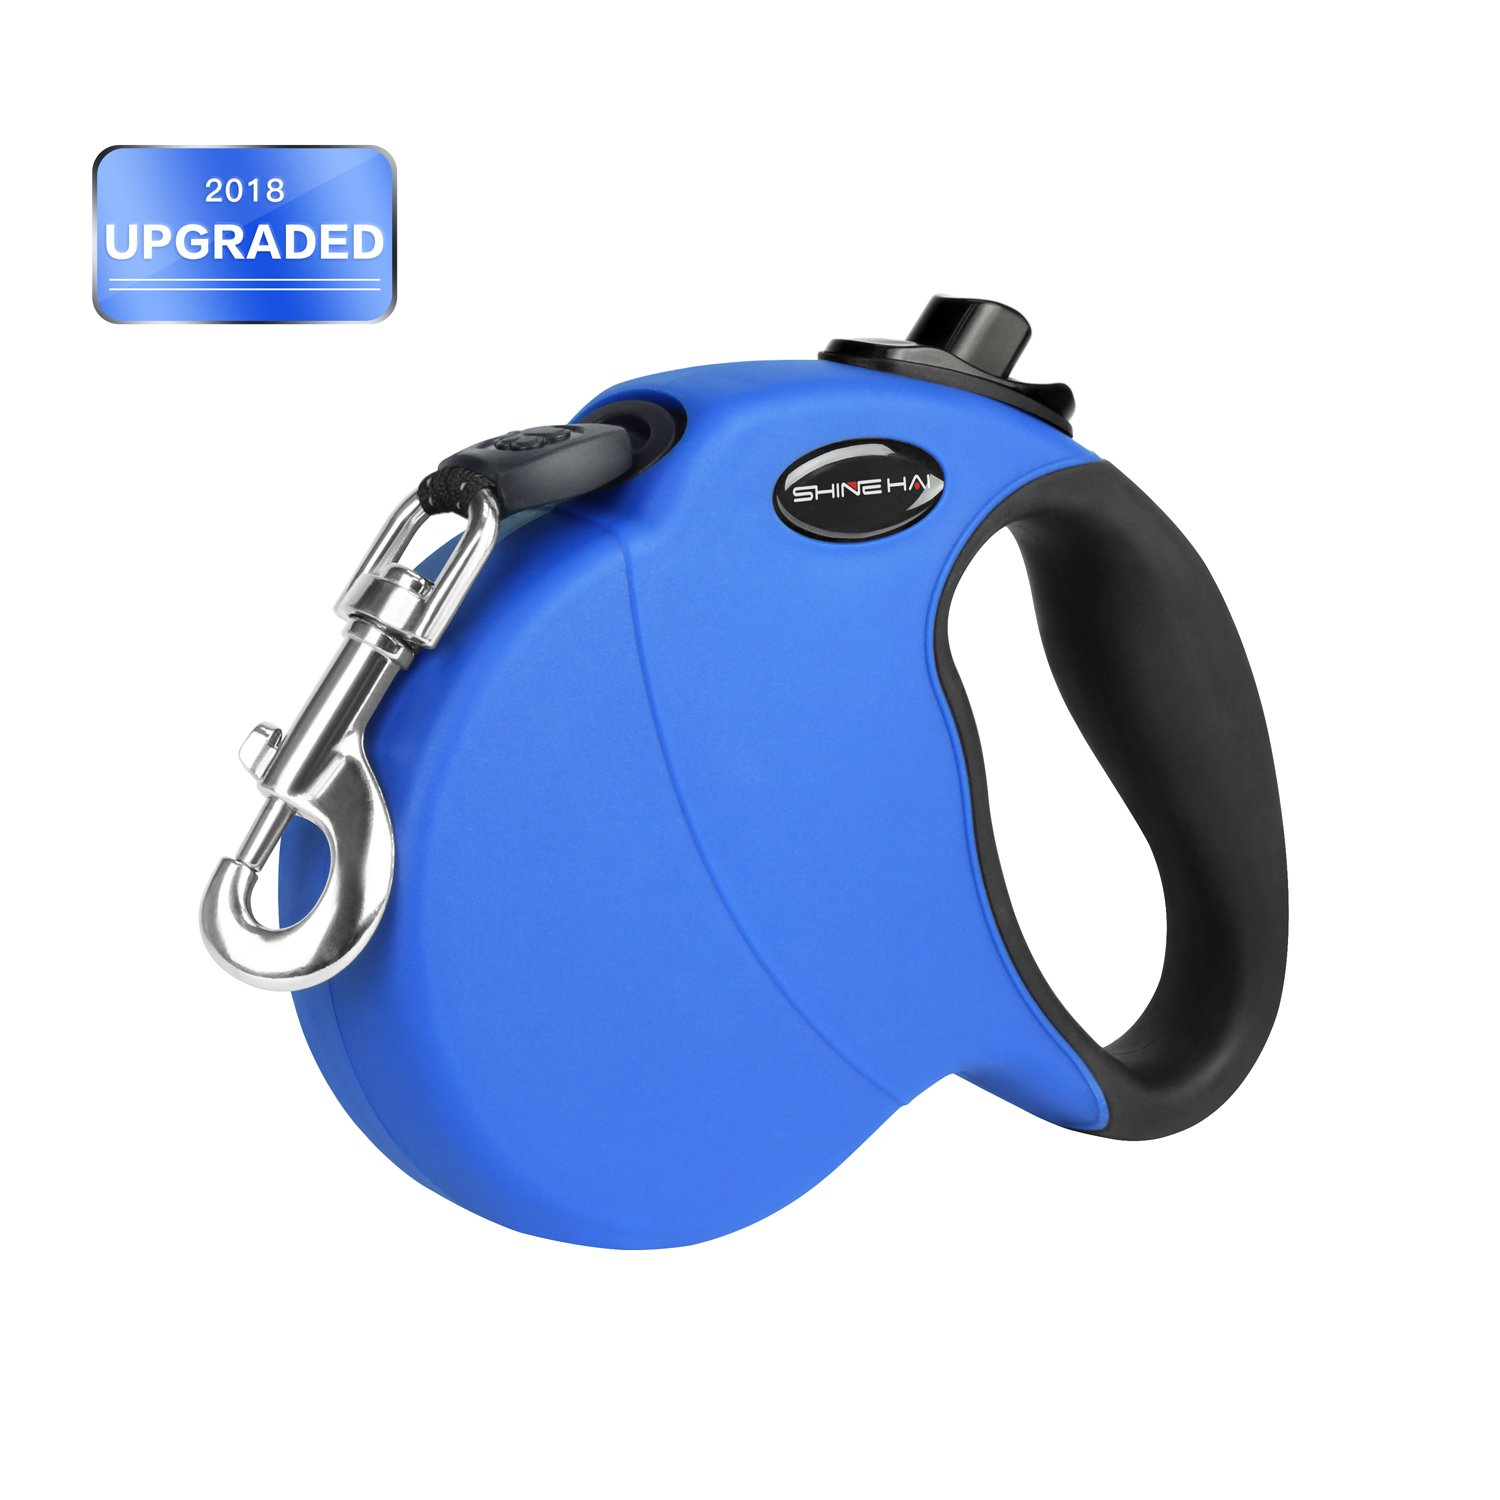 SHINE HAI Upgraded Heavy Duty Dog Leash Retractable, Reflective Ribbon Cord, 16ft Dog Walking Leash Perfect for Large Medium Small Dog Up to 110lbs, Break & Lock System, Blue